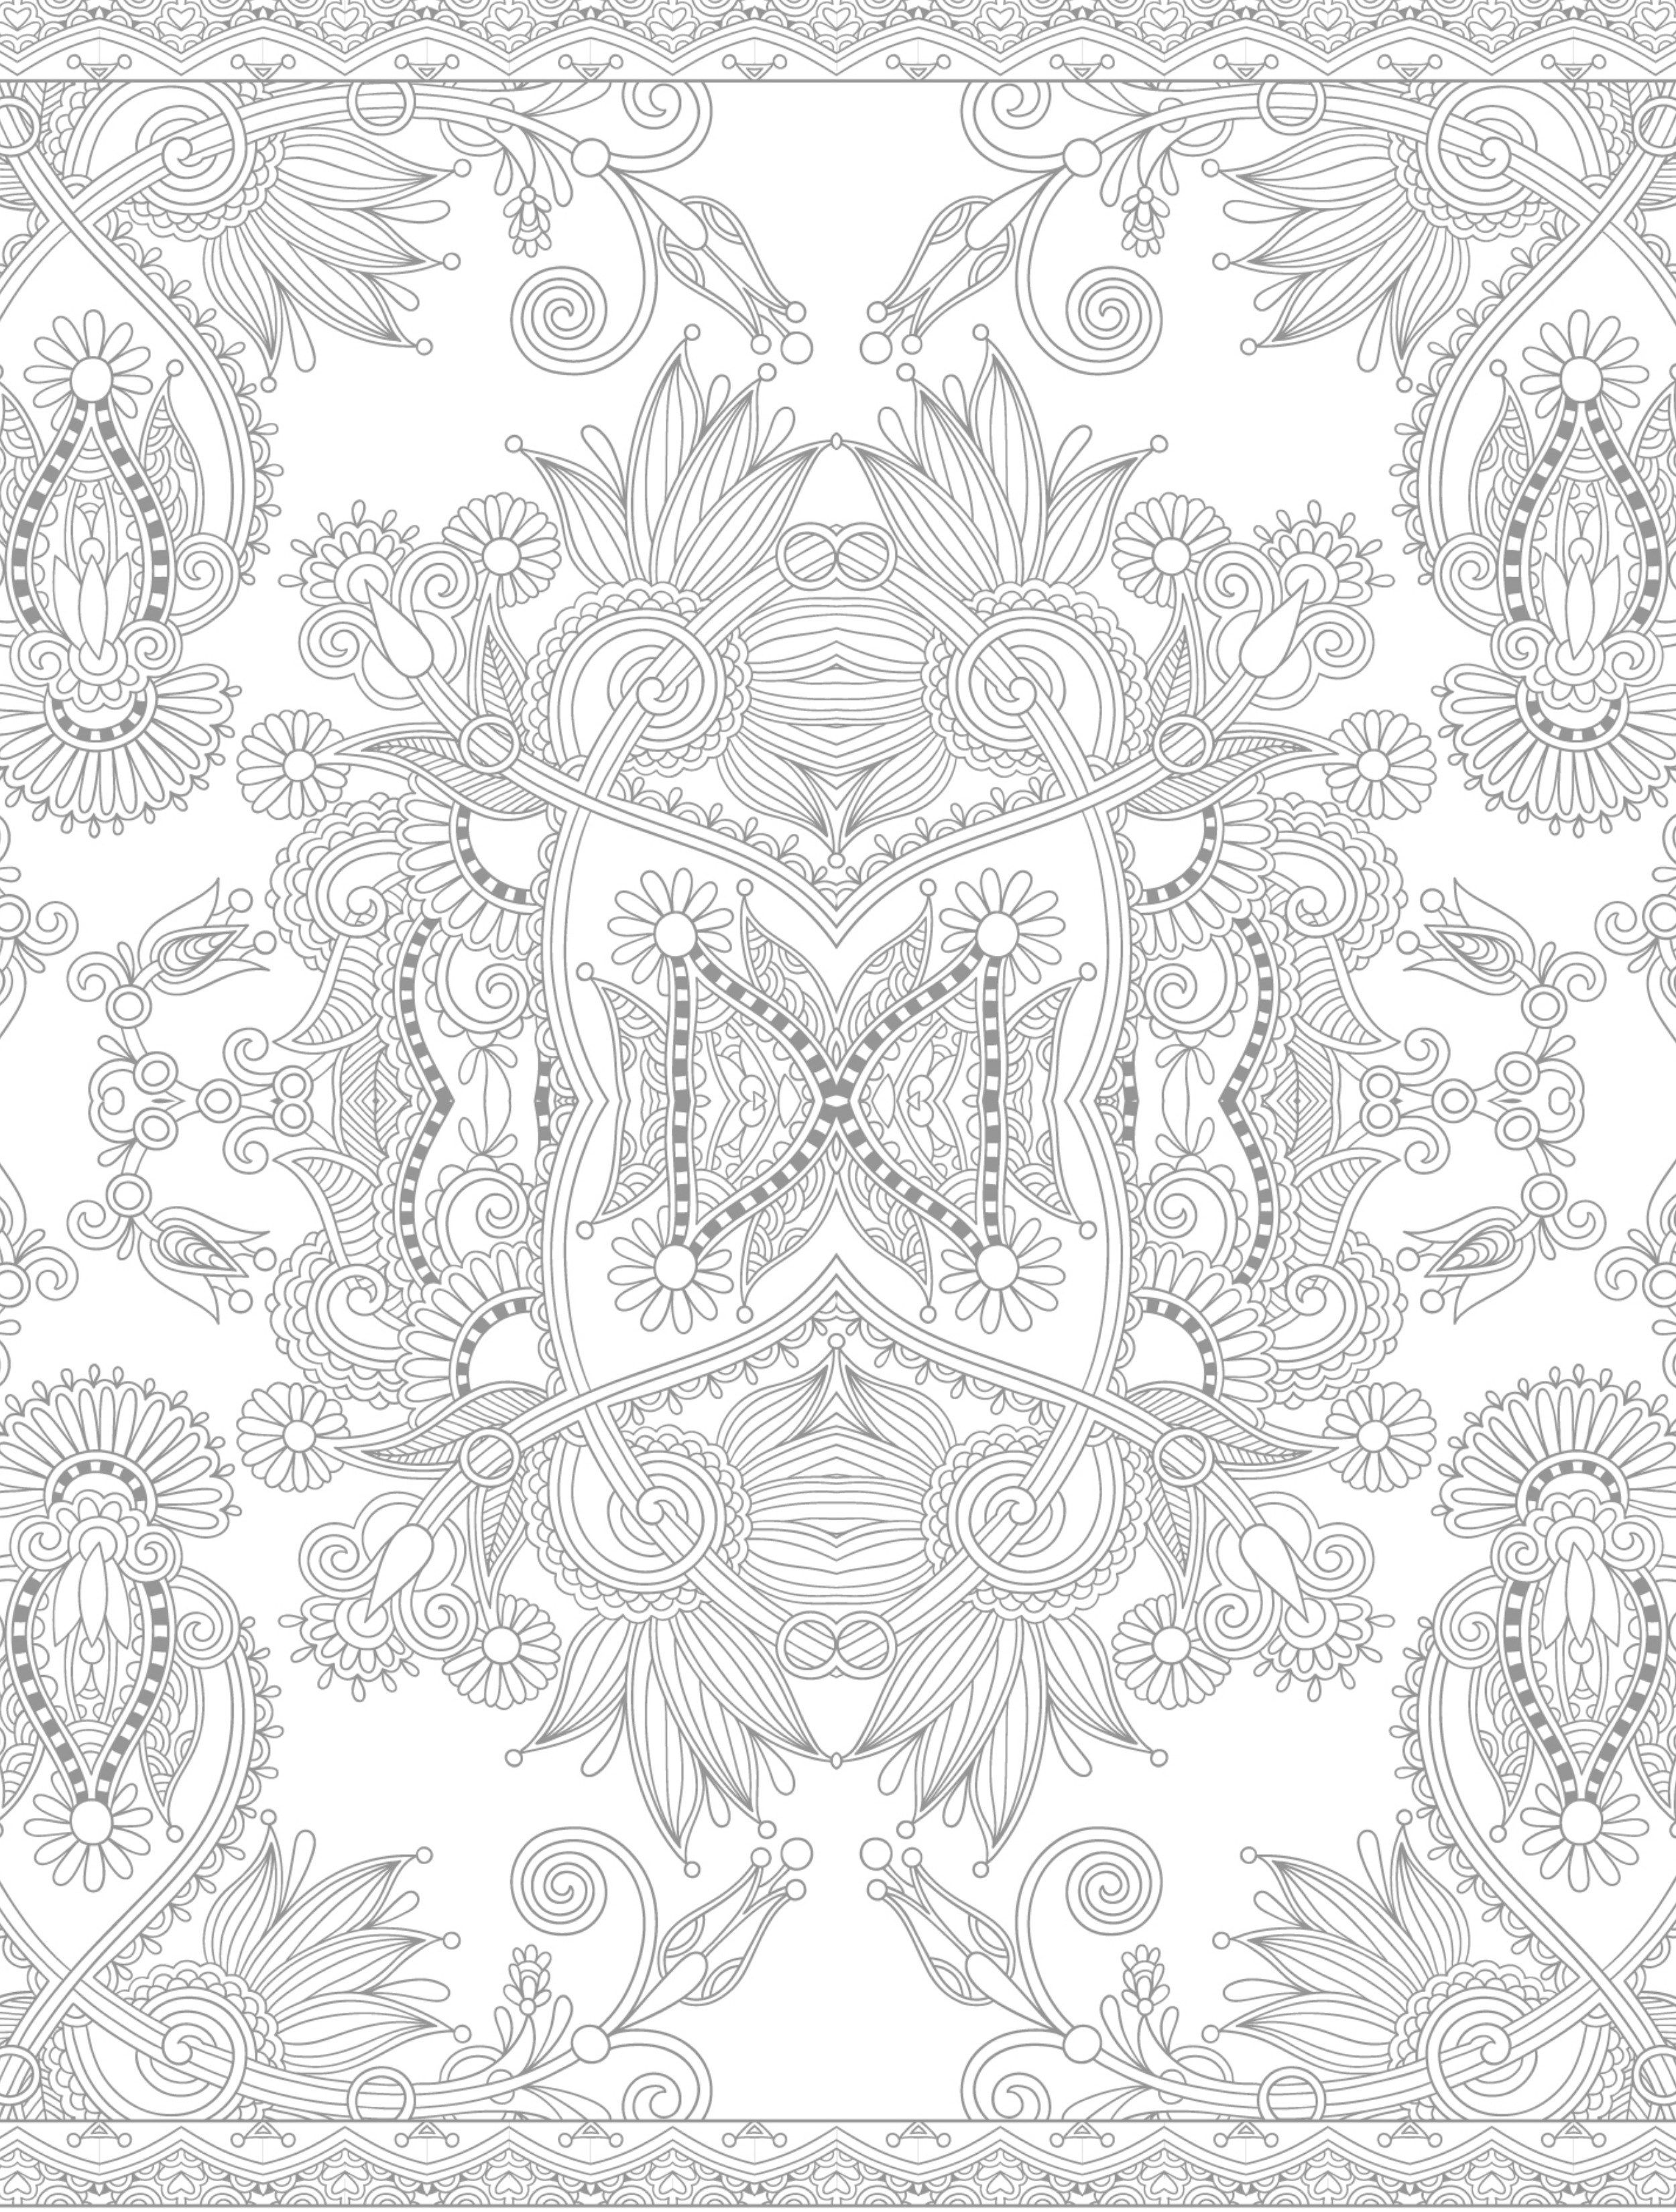 downloadable coloring pages for adults web | Adult Coloring Pages ...